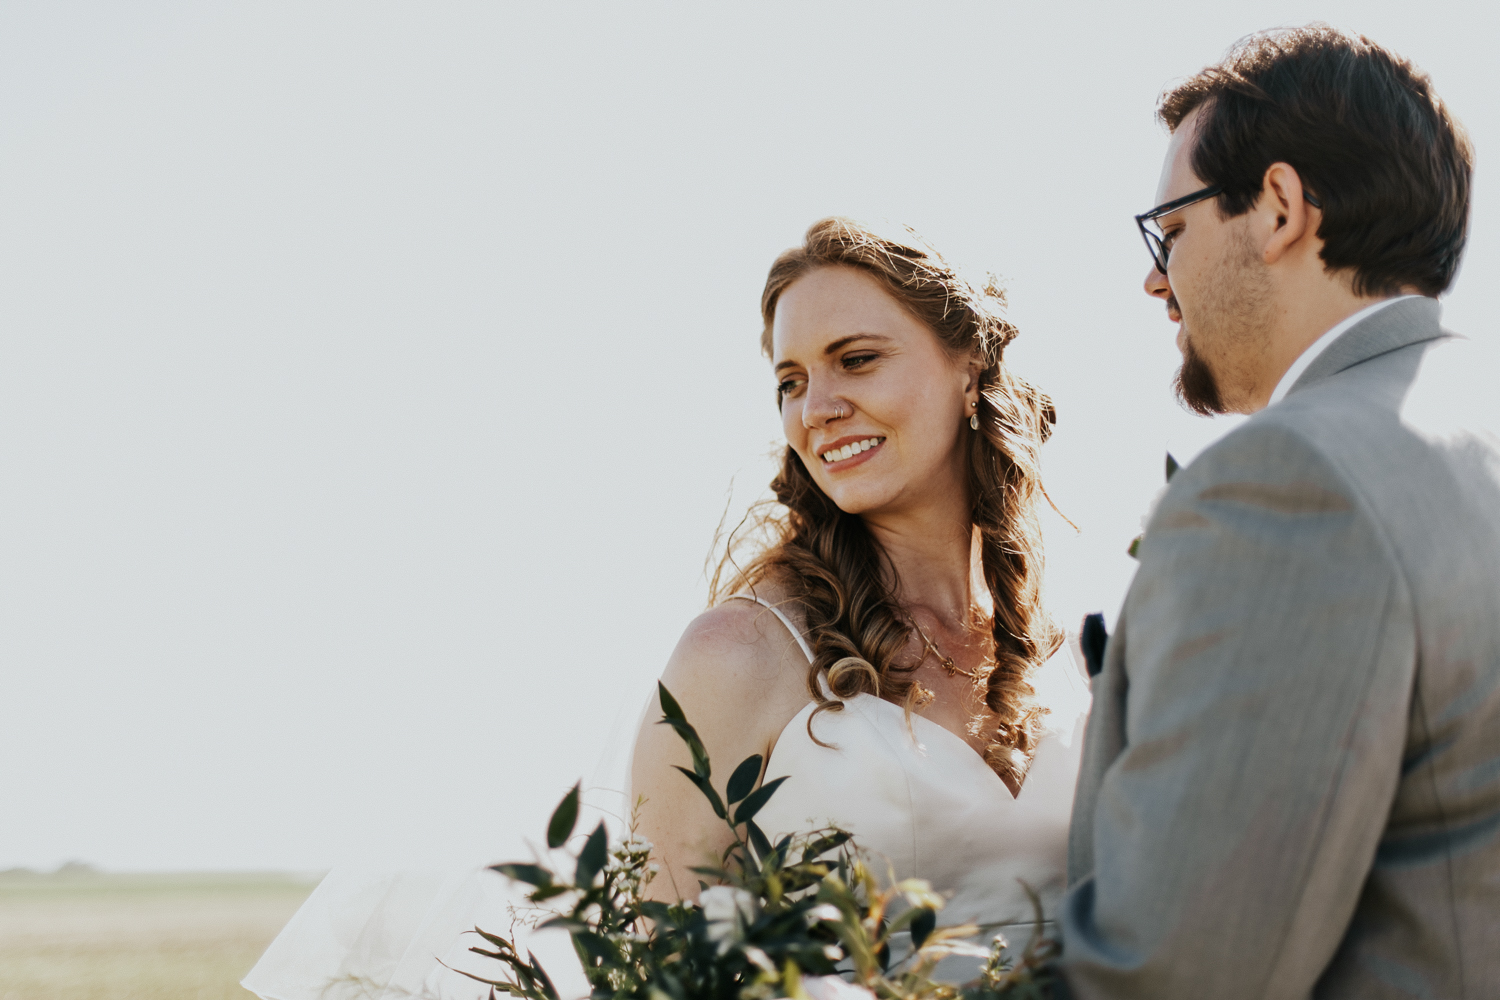 lethbridge-wedding-photographer-love-and-be-loved-photography-dan-tynnea-picture-image-photo-166.jpg